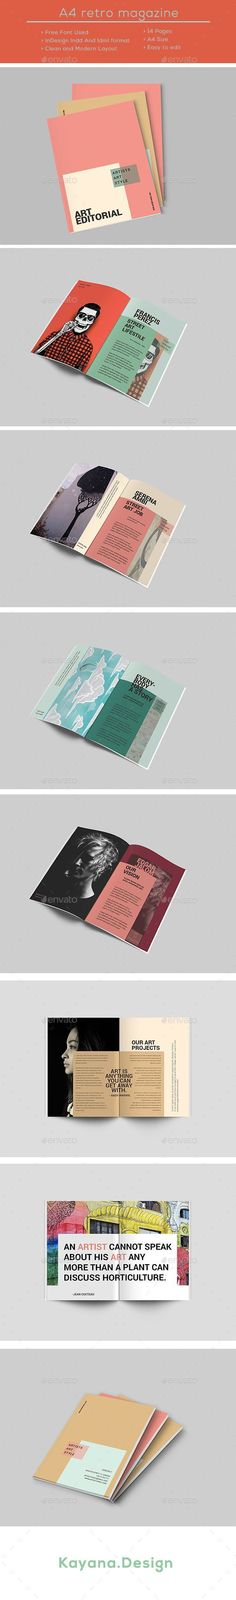 A4 Street Art Editorial Brochure